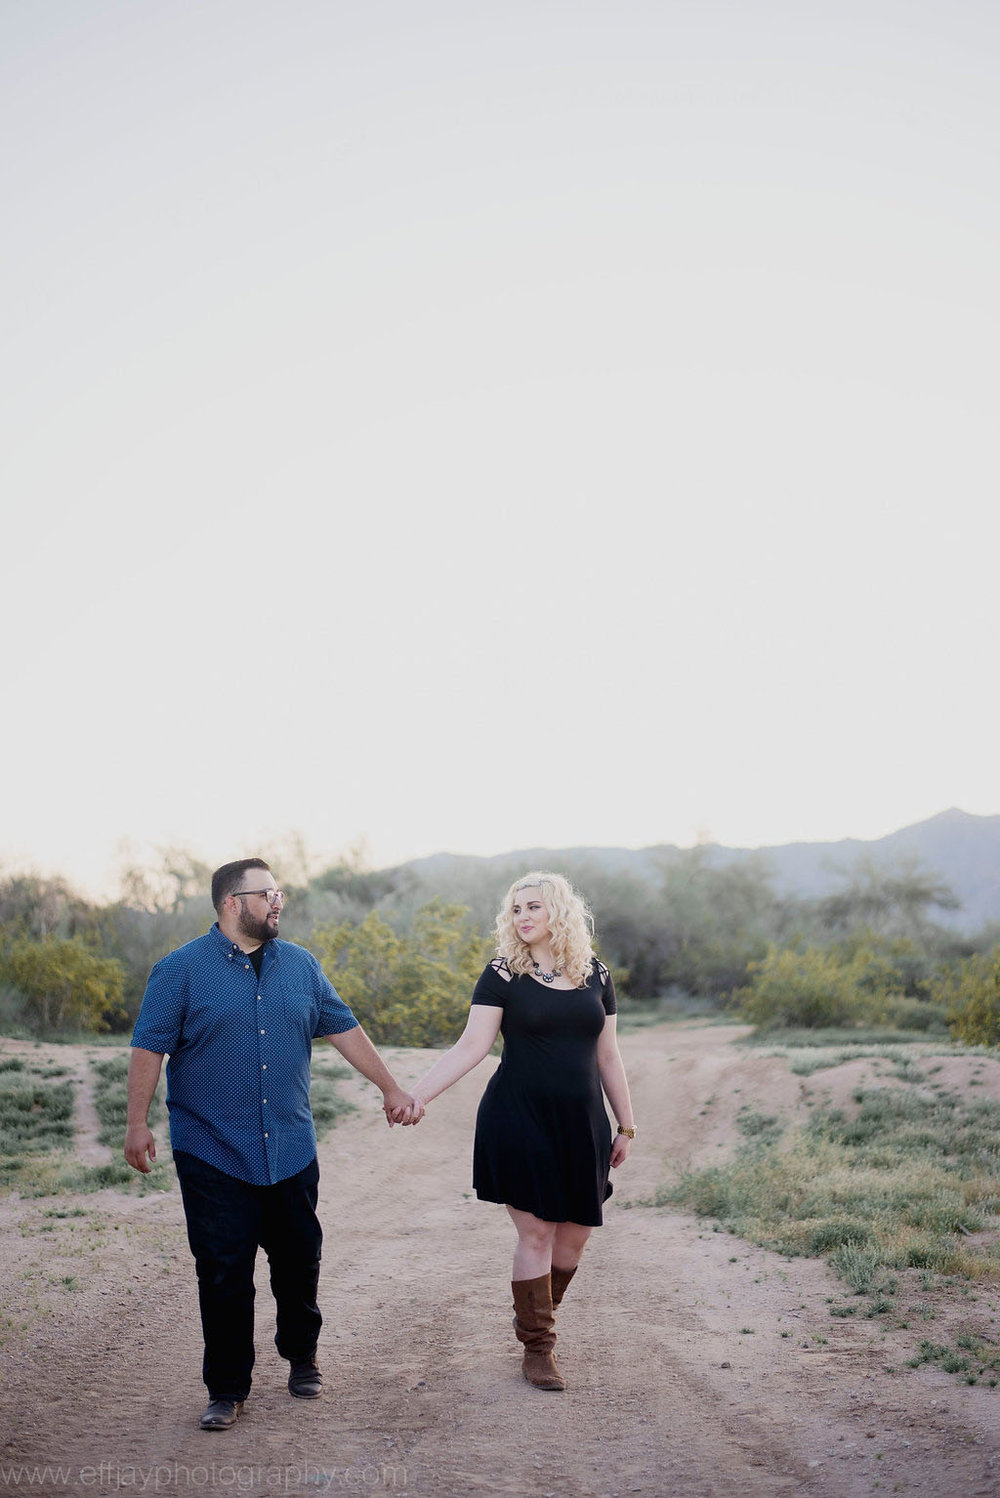 Austin Wedding Photographer Destination Arizona Desert Engagement Session012.jpg